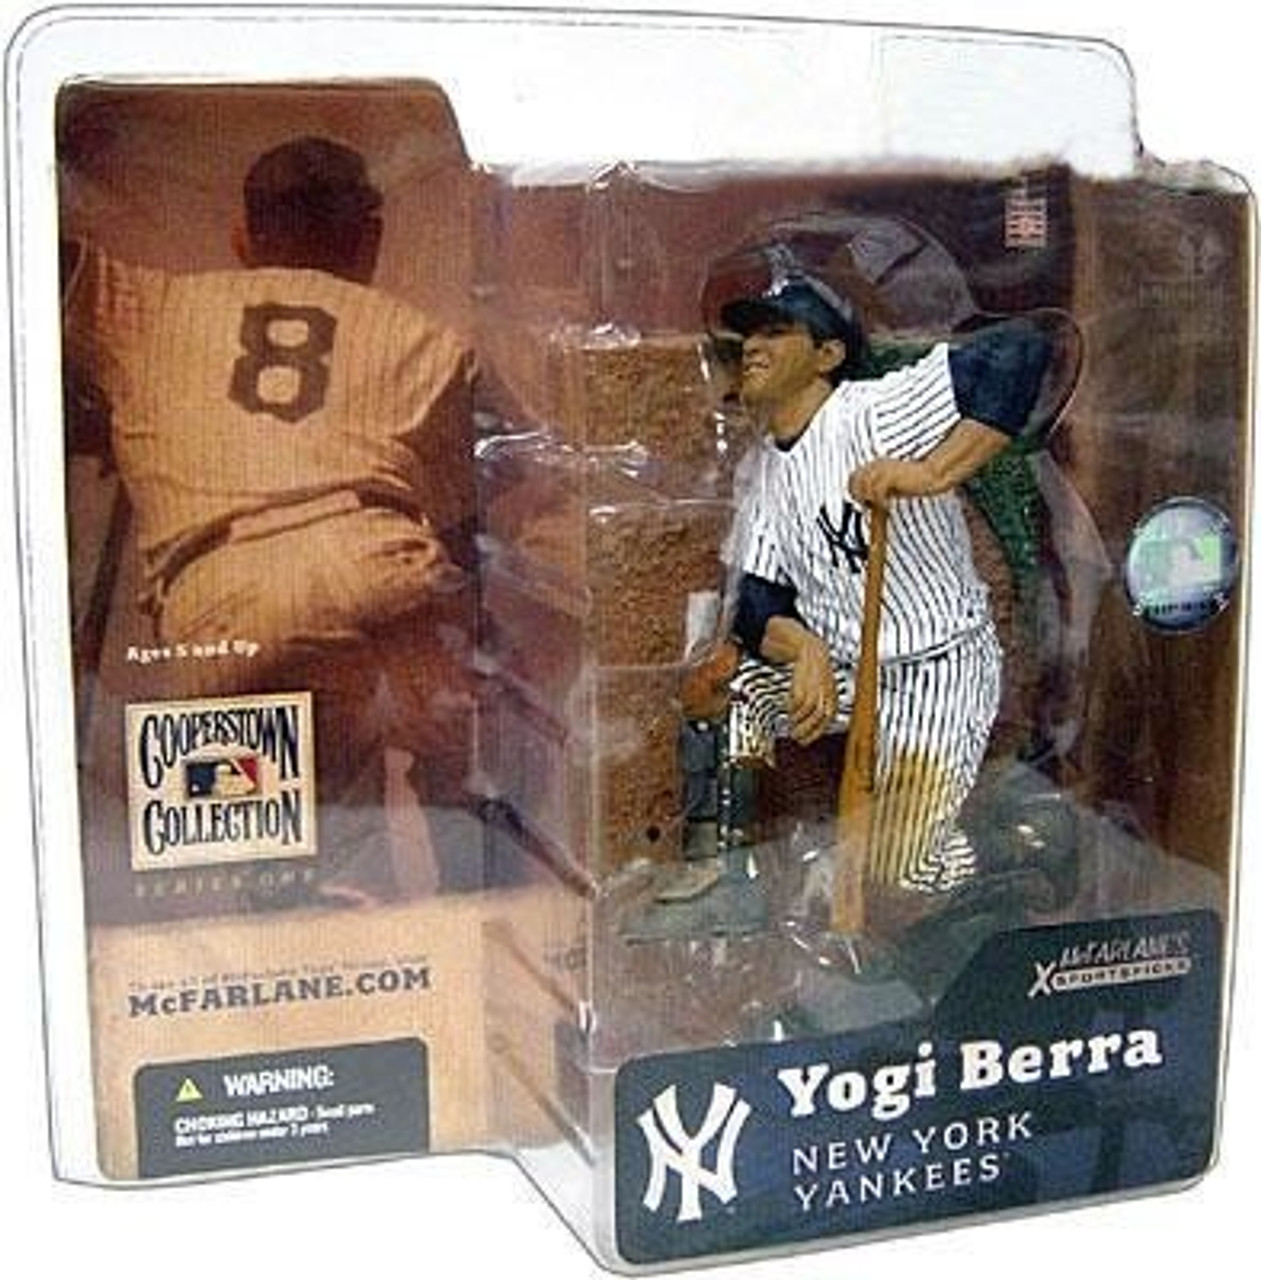 Cooperstown Mickey Mantle Deluxe Boxed New York Yankees FIGURINE McFARLANE!